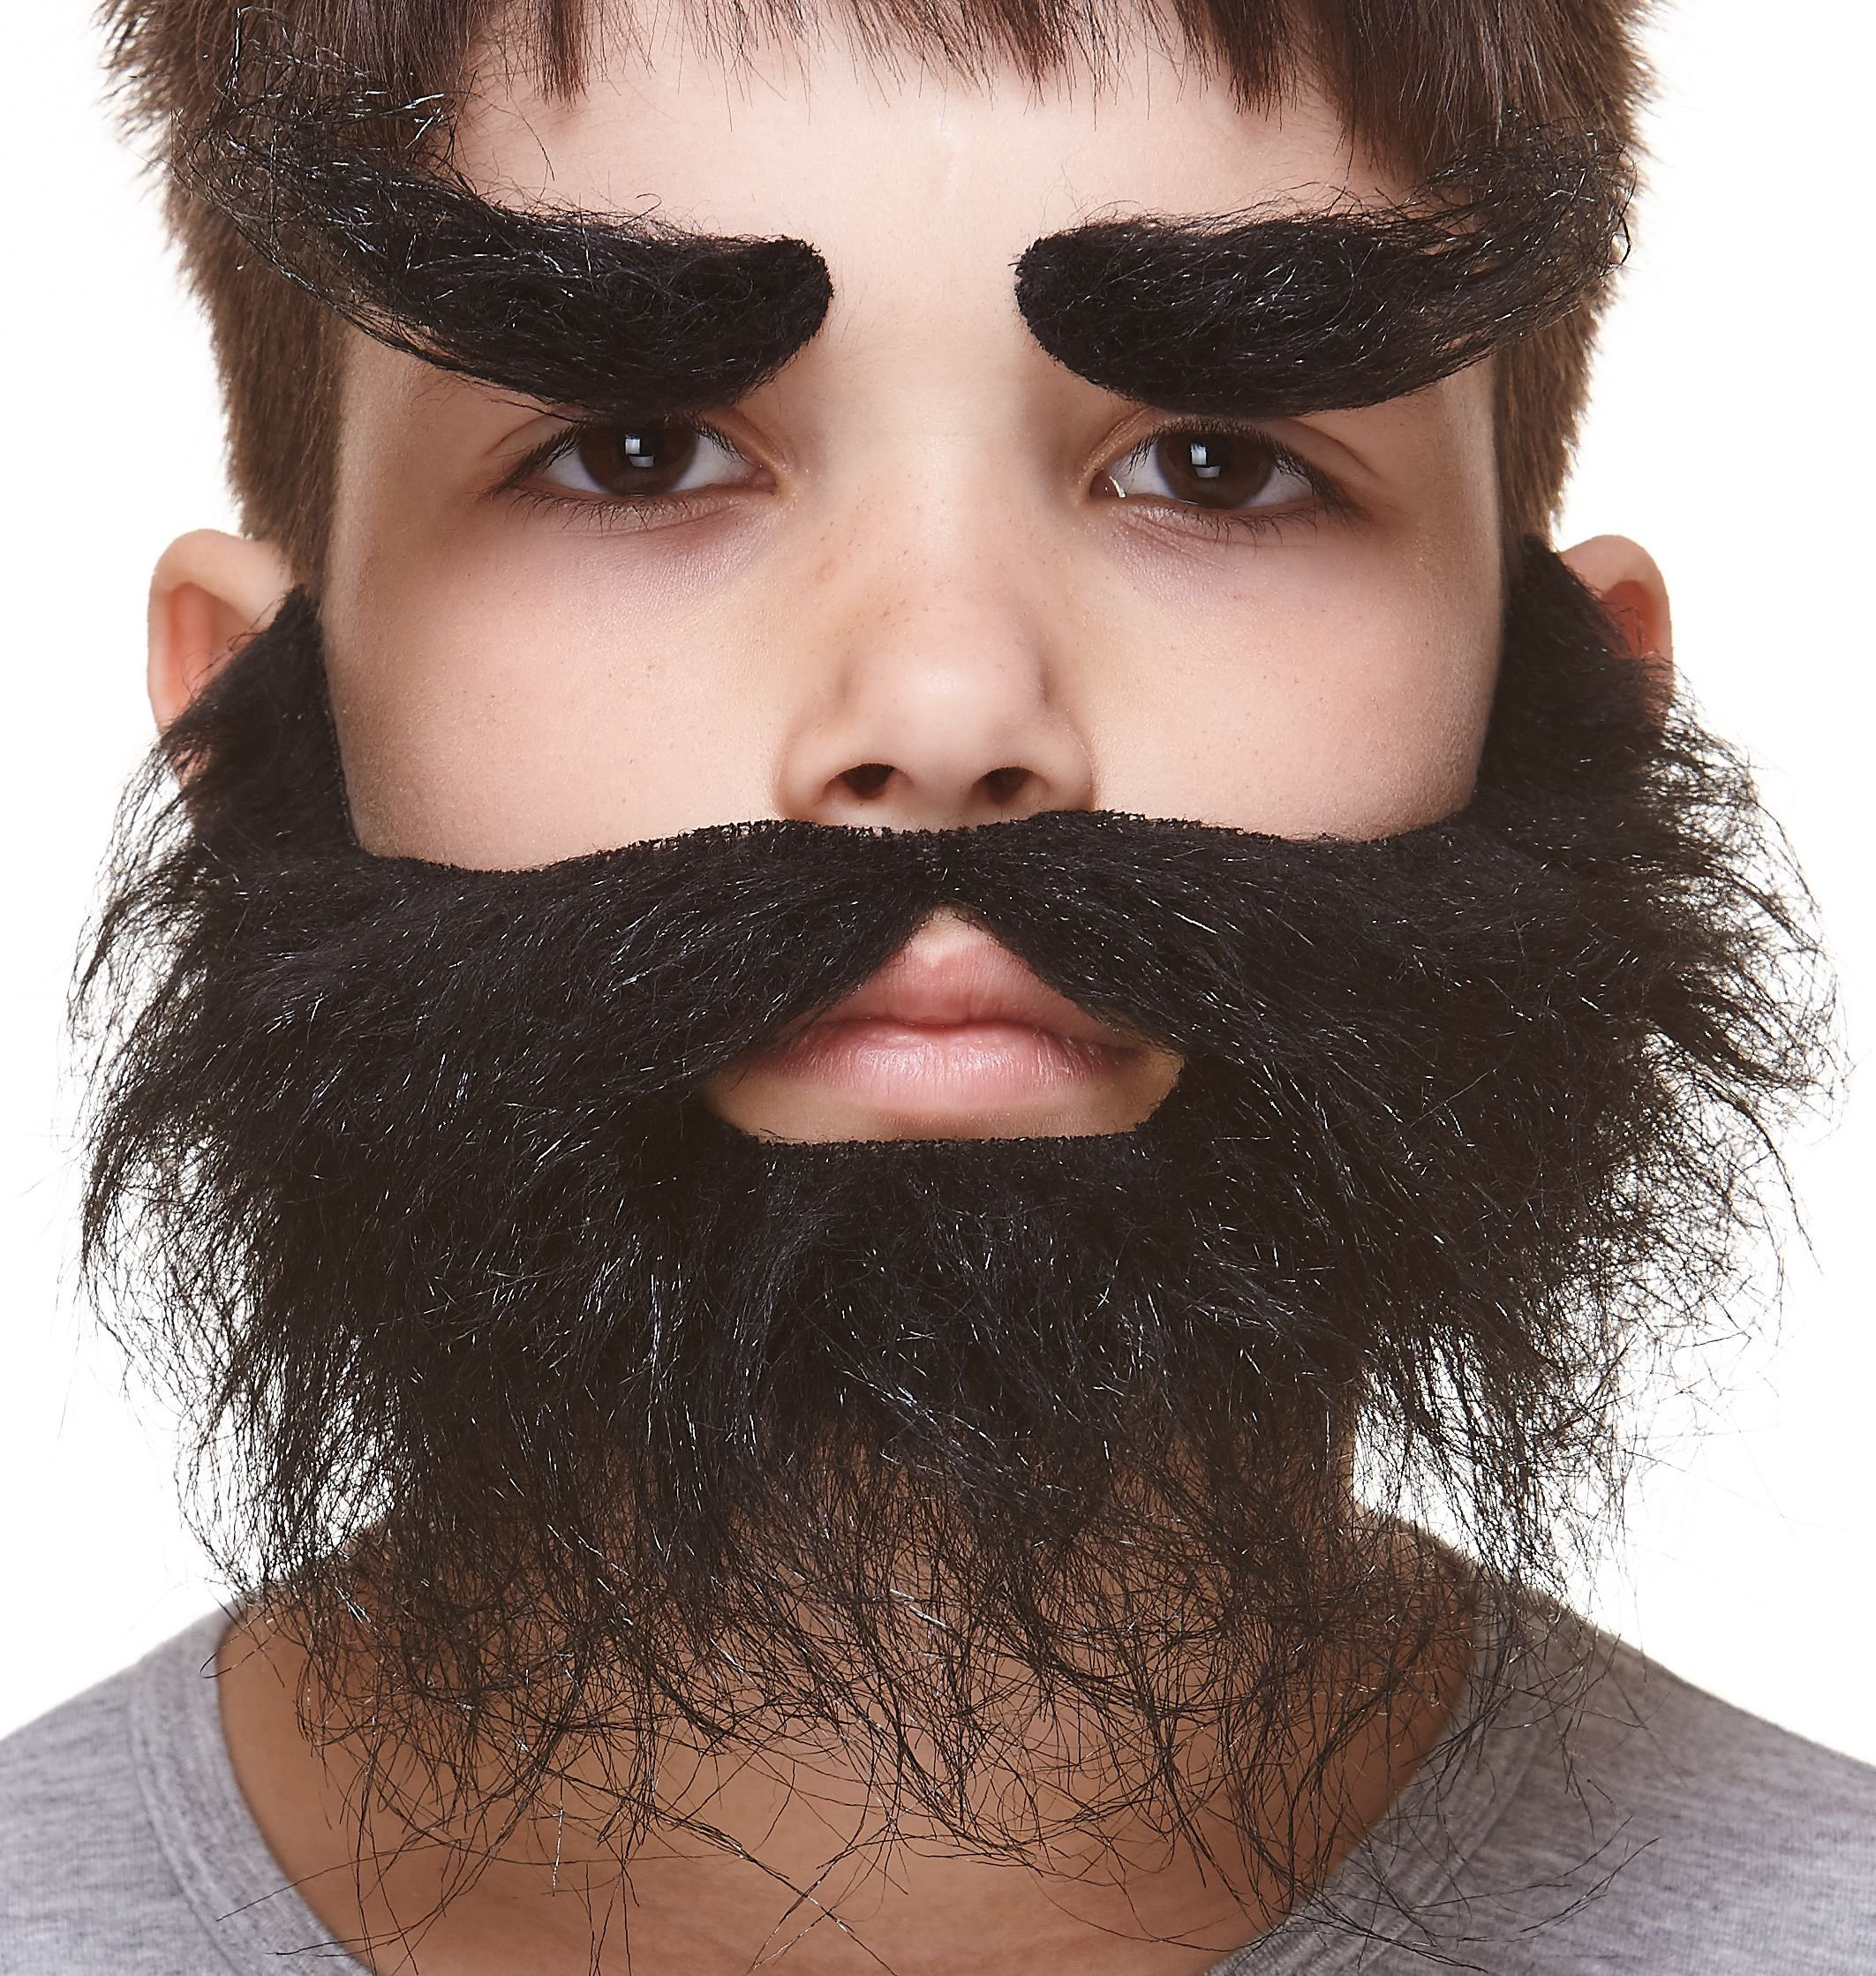 Mustaches Self Adhesive, Novelty, Fake, Small, Realistic Traper Beard, and Eyebrows, Black Color